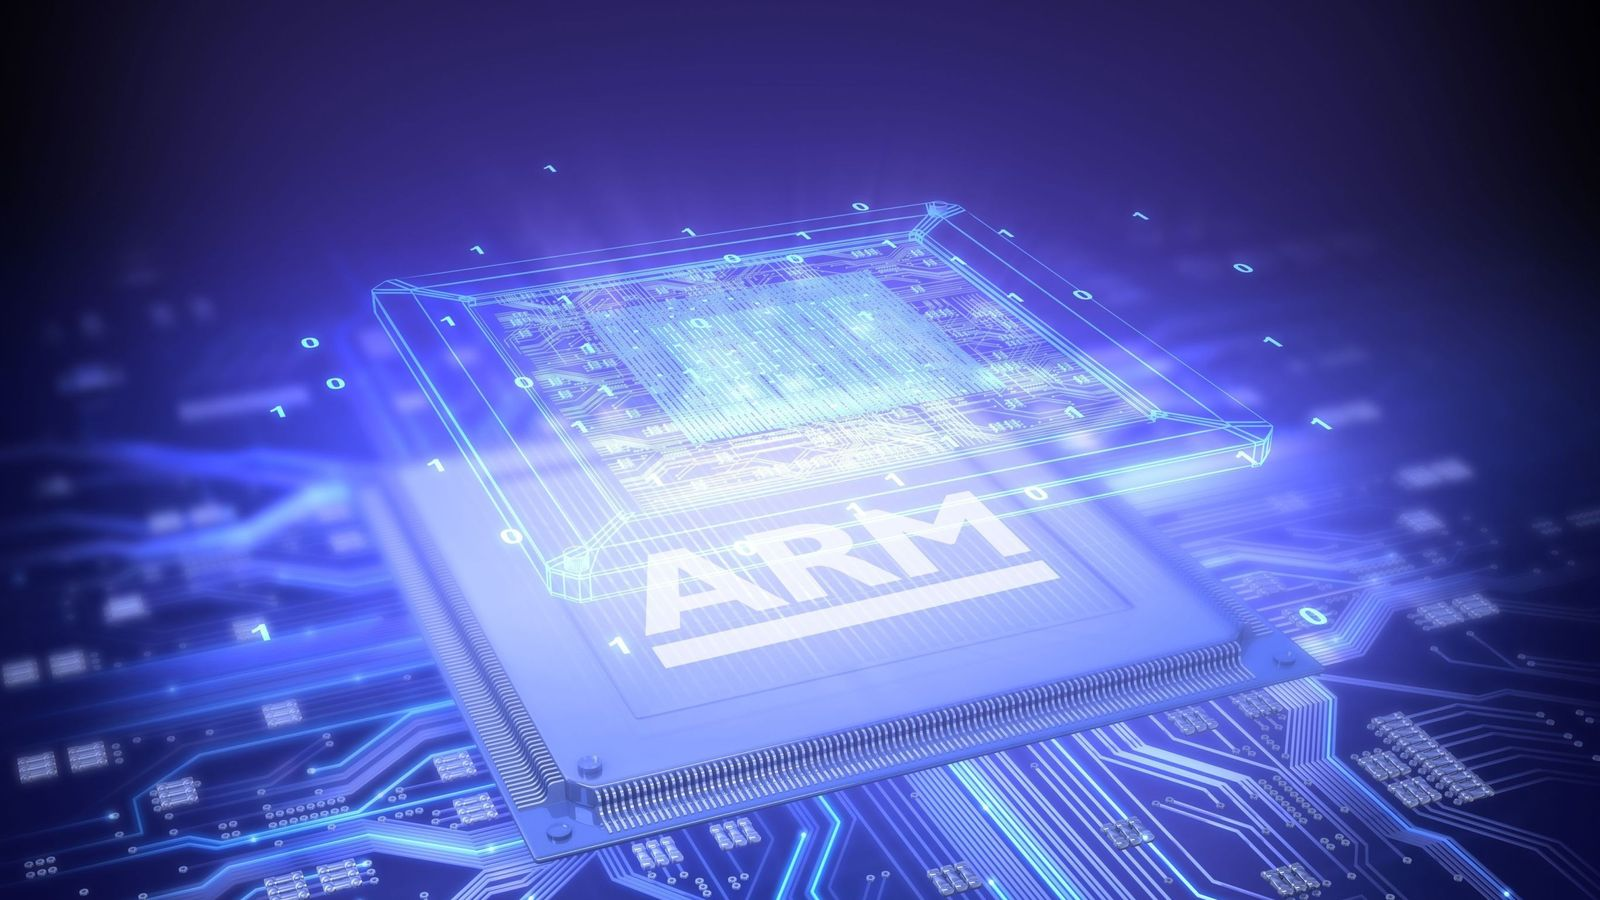 Government intervenes in sale of UK chip designer Arm over national security implications